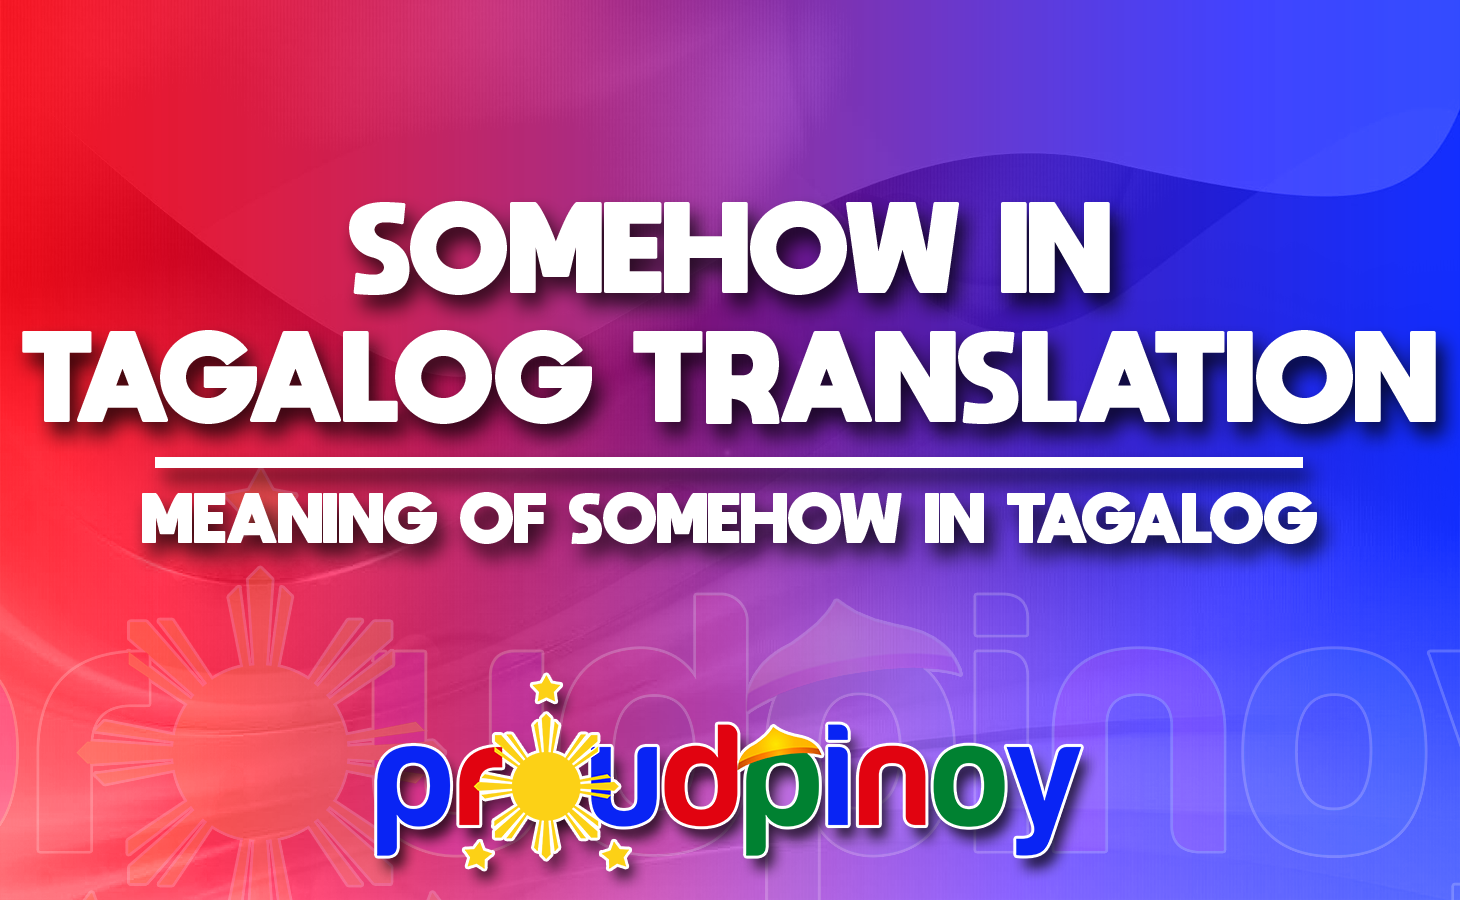 SOMEHOW IN TAGALOG TRANSLATION - MEANING OF SOMEHOW IN TAGALOG